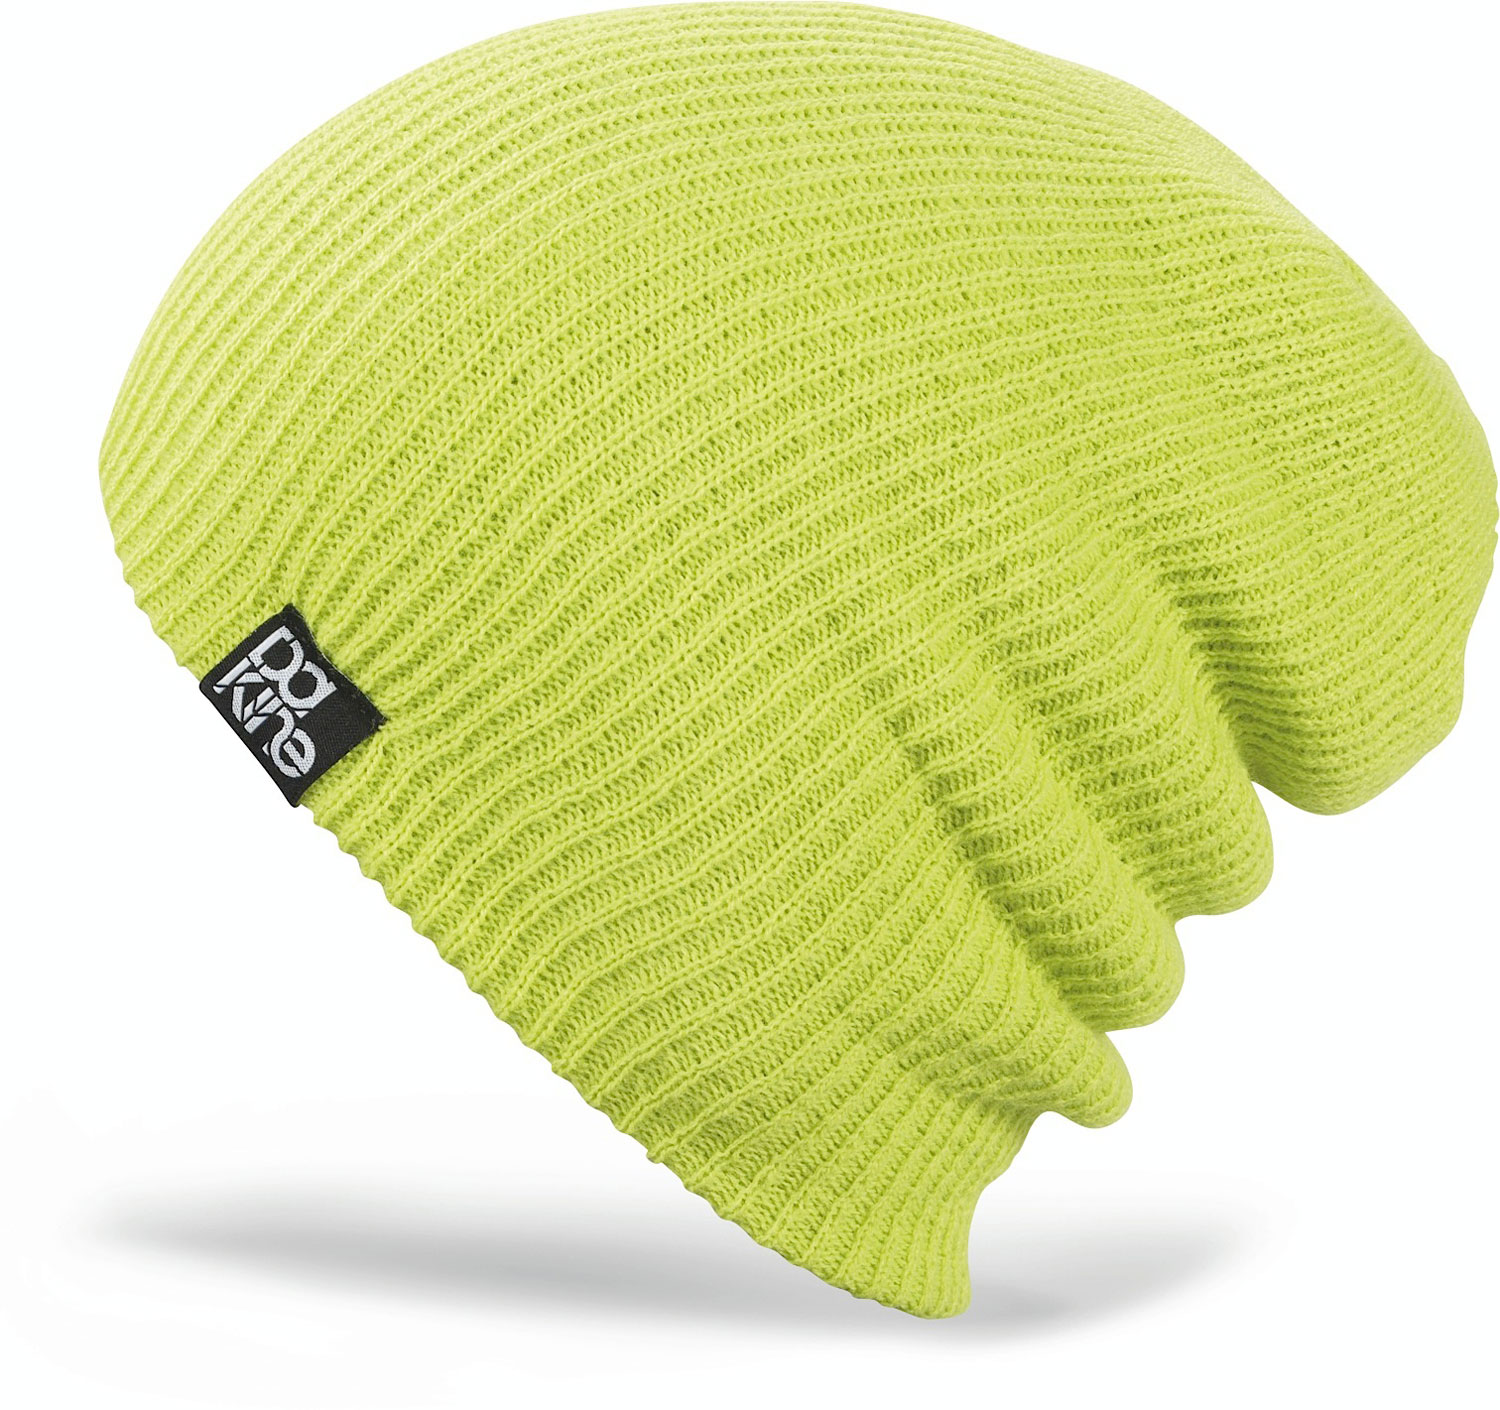 Snowboard This beanie can be roll it up or pull ot down ether way your going to look great in hat.Key Features of the Dakine Tall Boy Beanie: acrylic ribbed knit Double lined wear slouchy or cuffed - $12.95